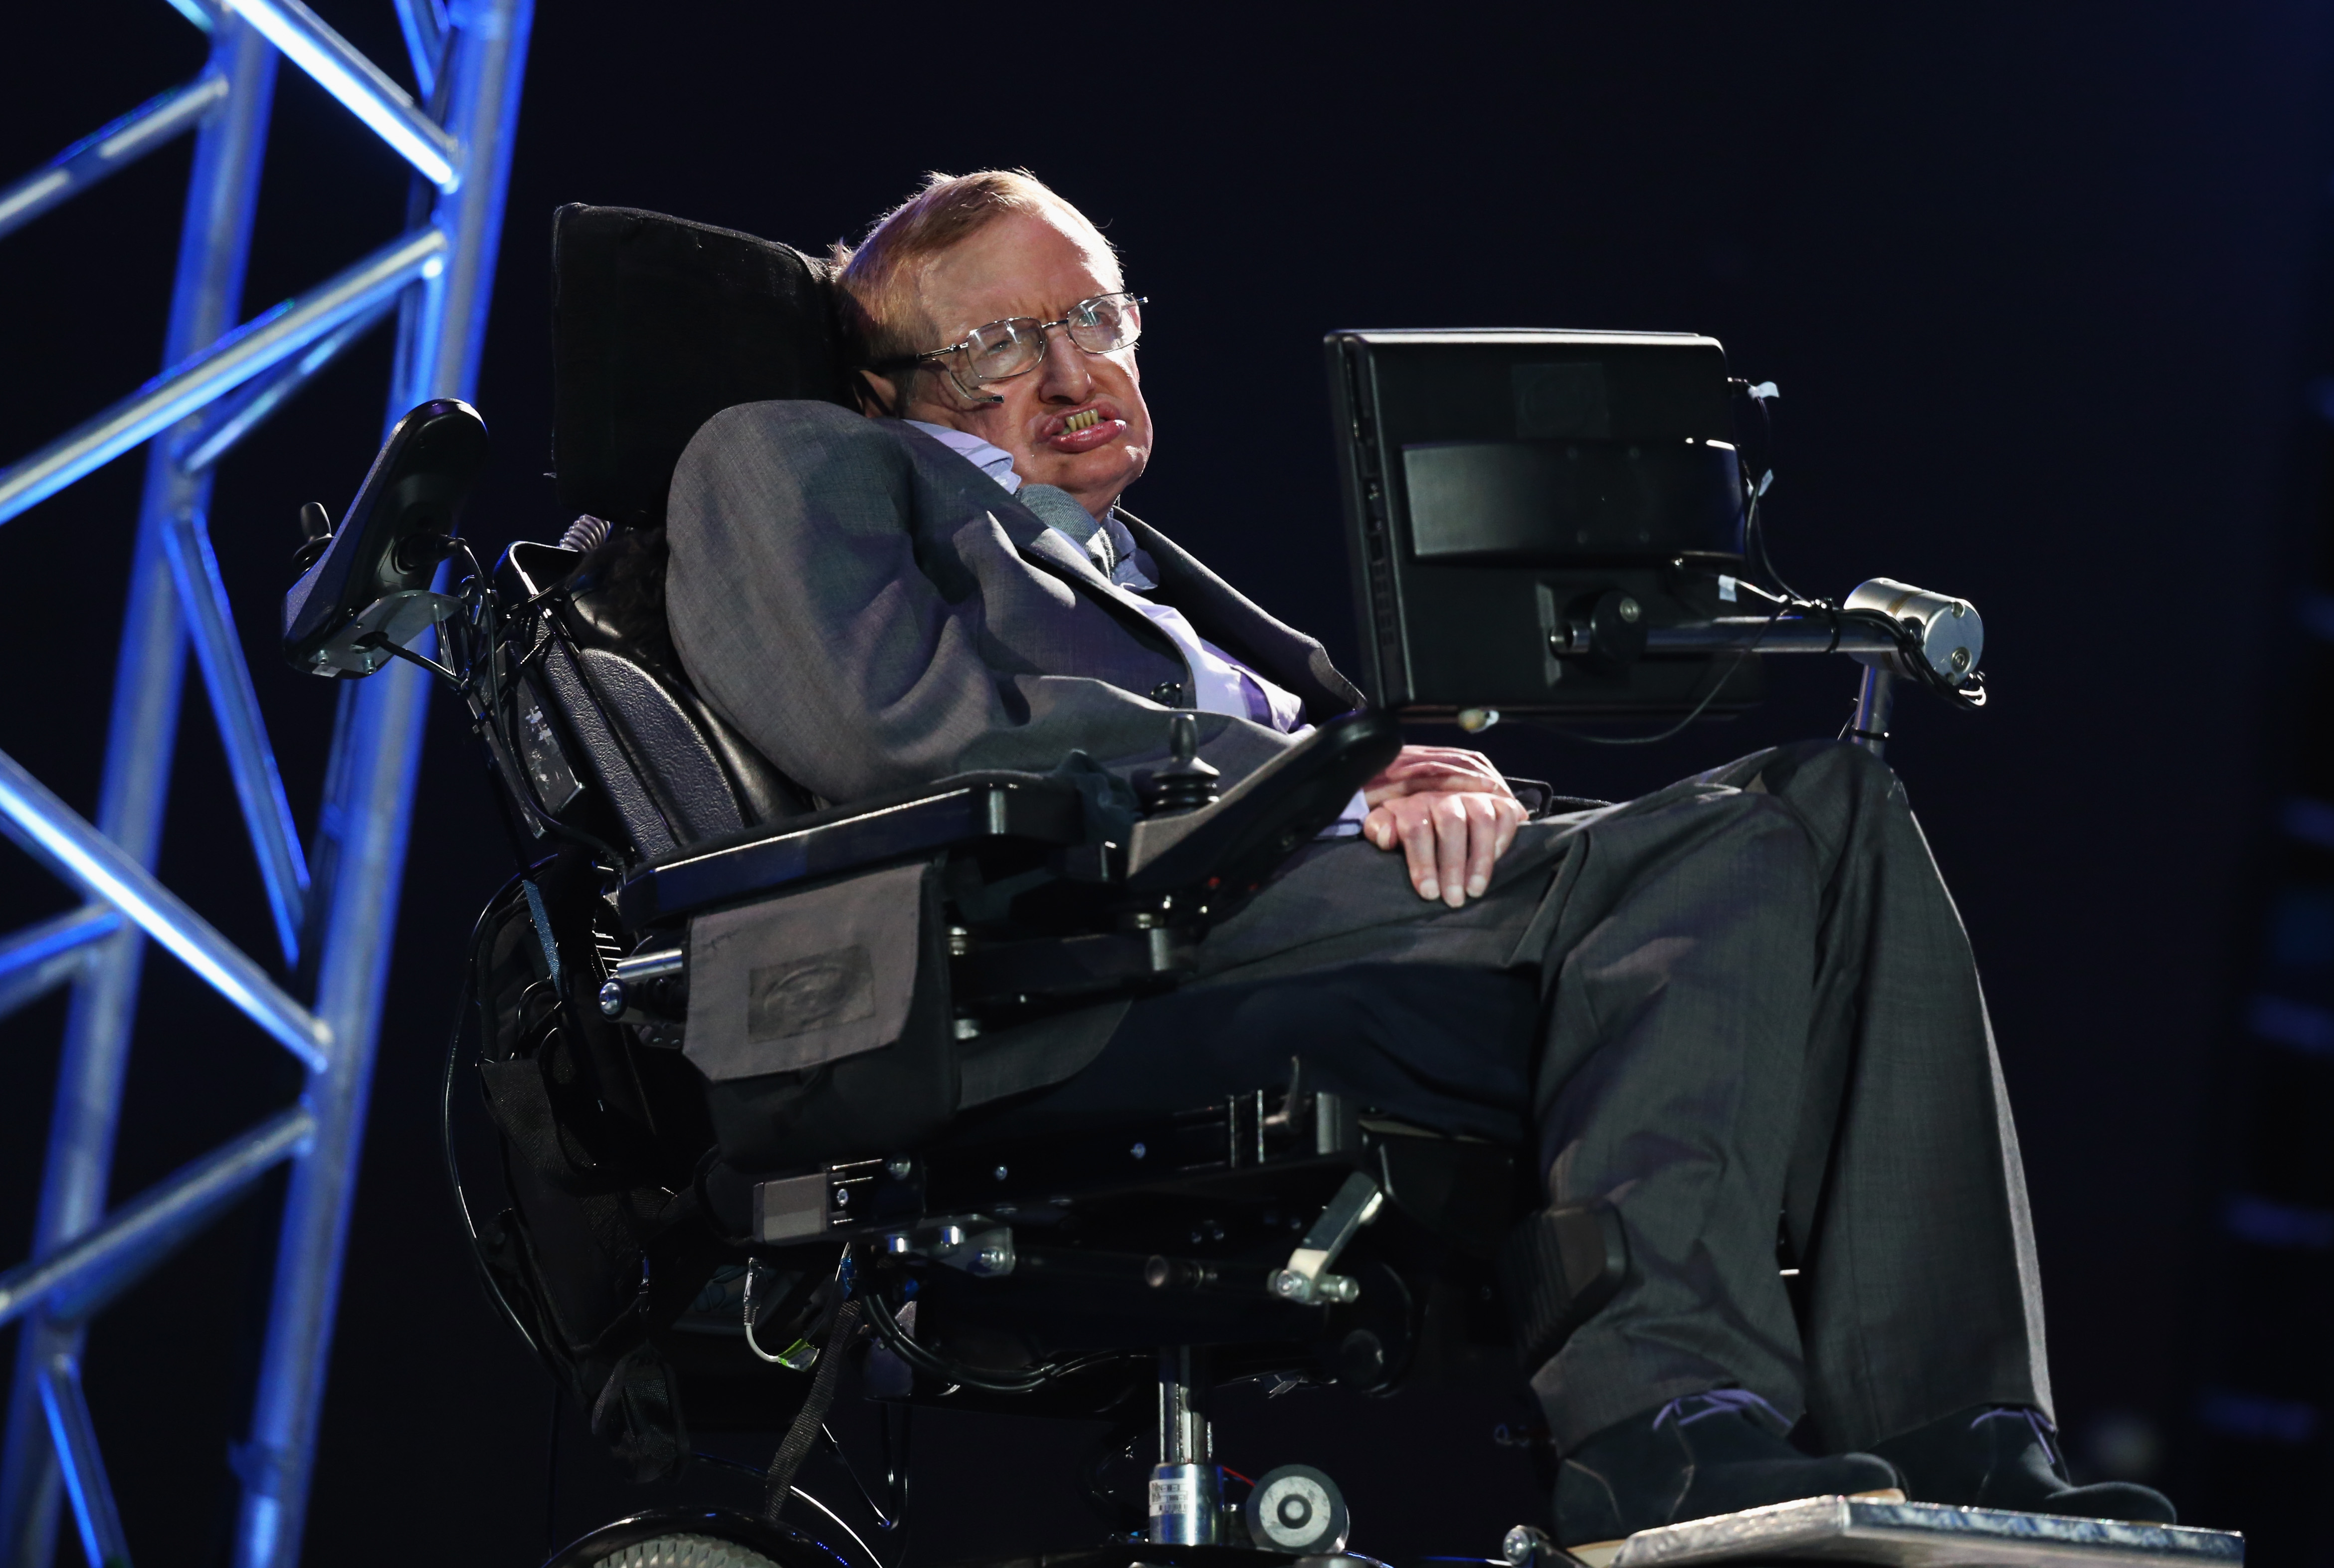 The 2012 Paralympics Opening Ceremony, Stephen Haw